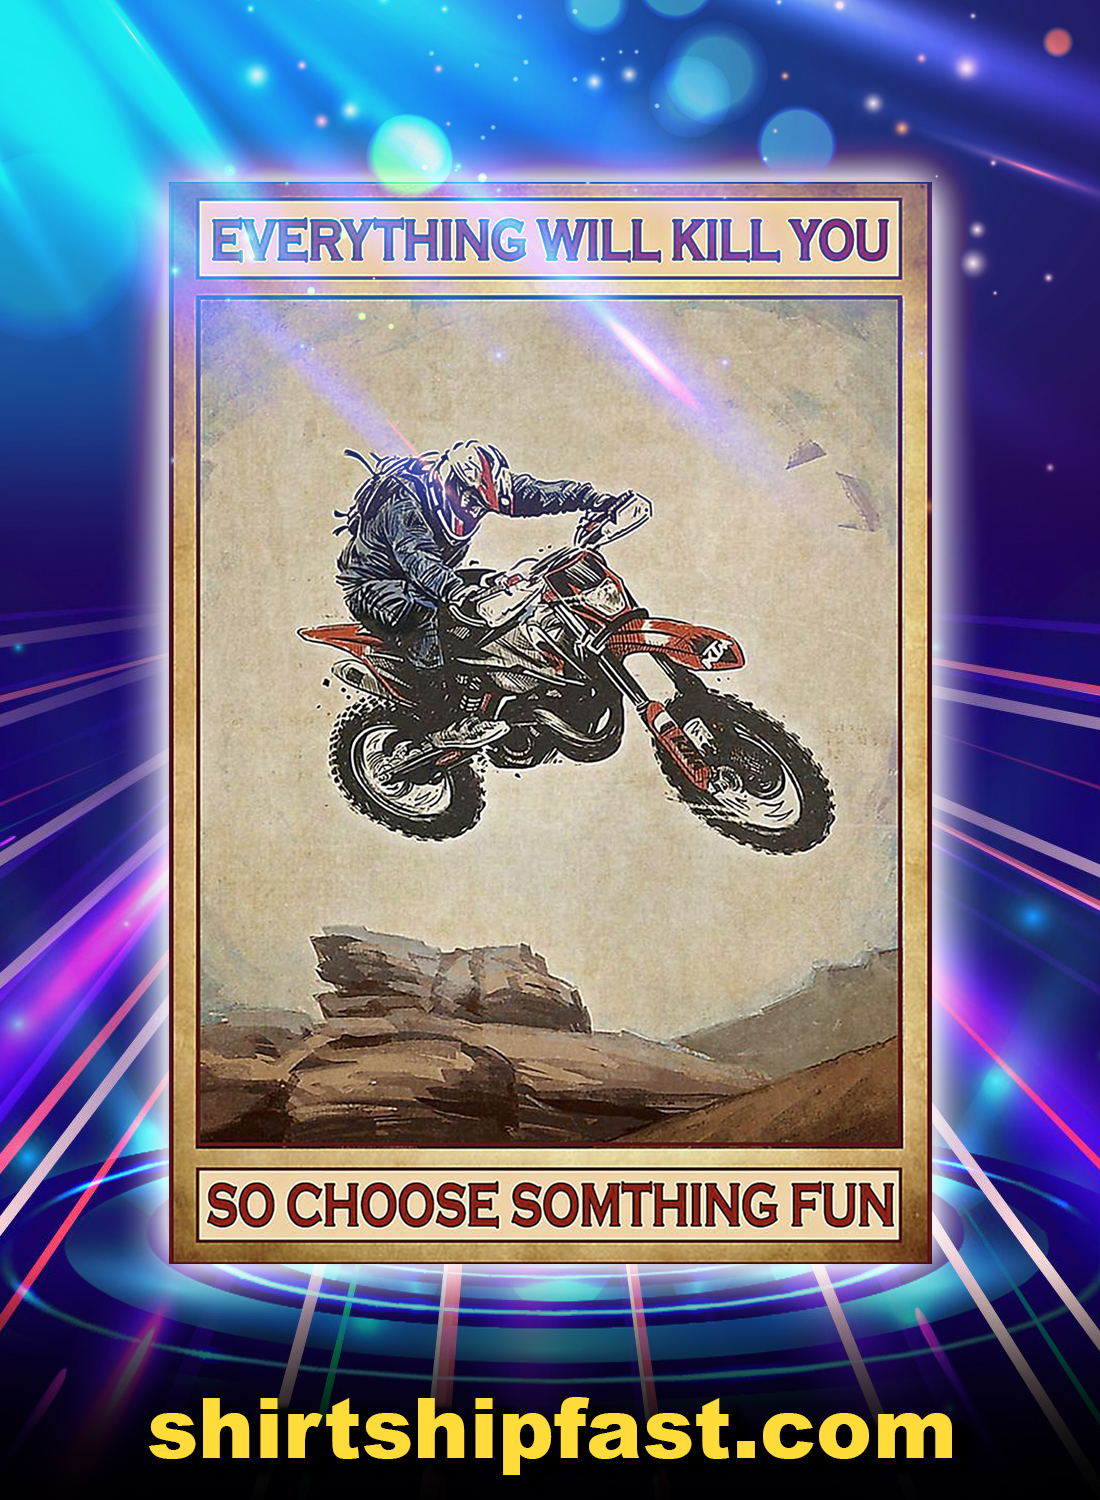 Picture motocross everything will kill you so choose something fun poster - A4